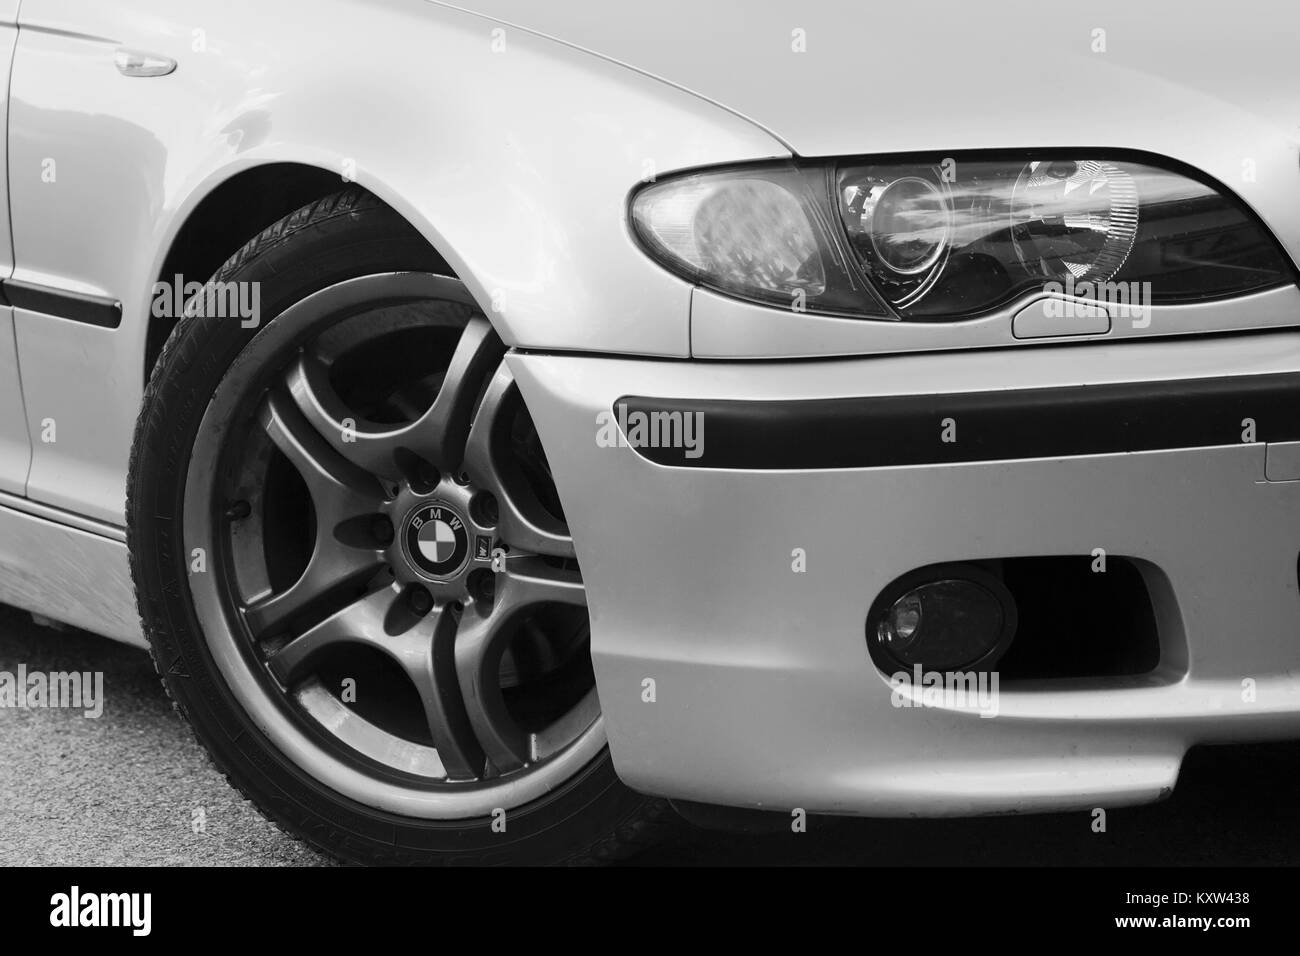 SOFIA, BULGARIA - APRIL 18, 2017: Black and white detail from BMW M3 in the country road. The BMW 3 Series is a - Stock Image